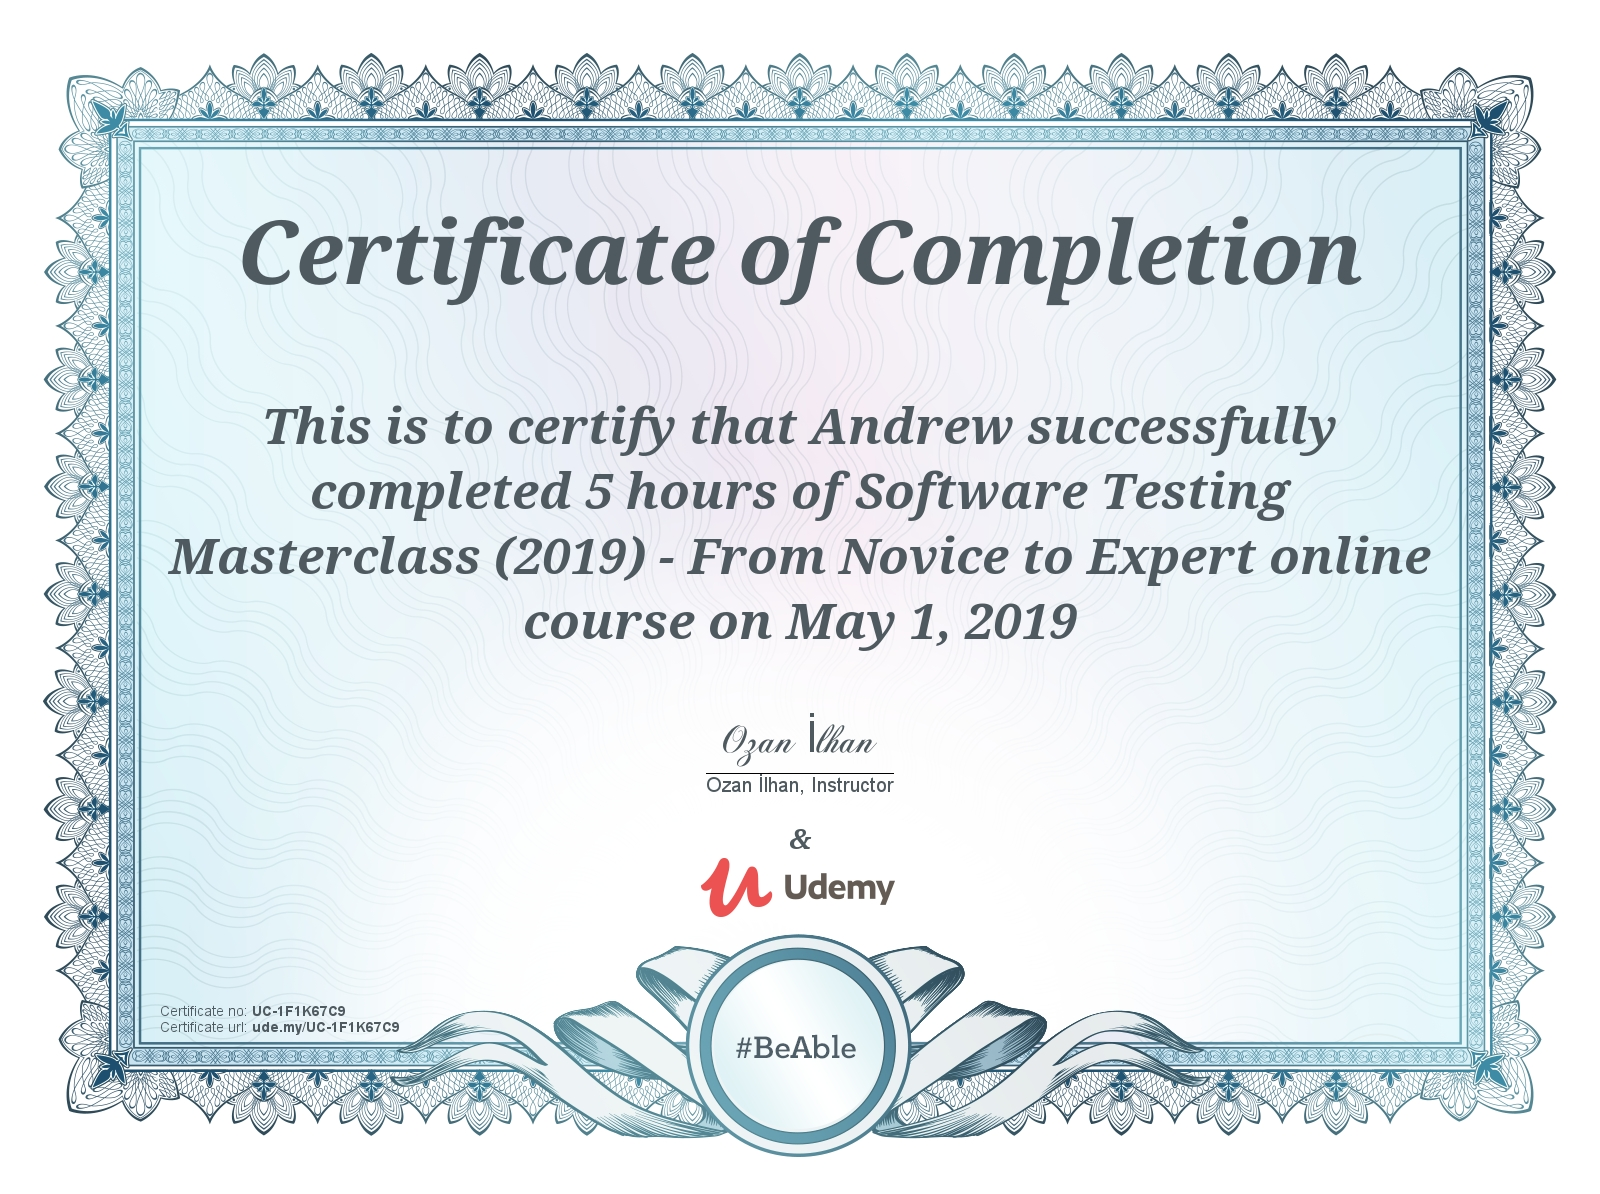 Software Testing Masterclass (2019) - From Notice to Expert